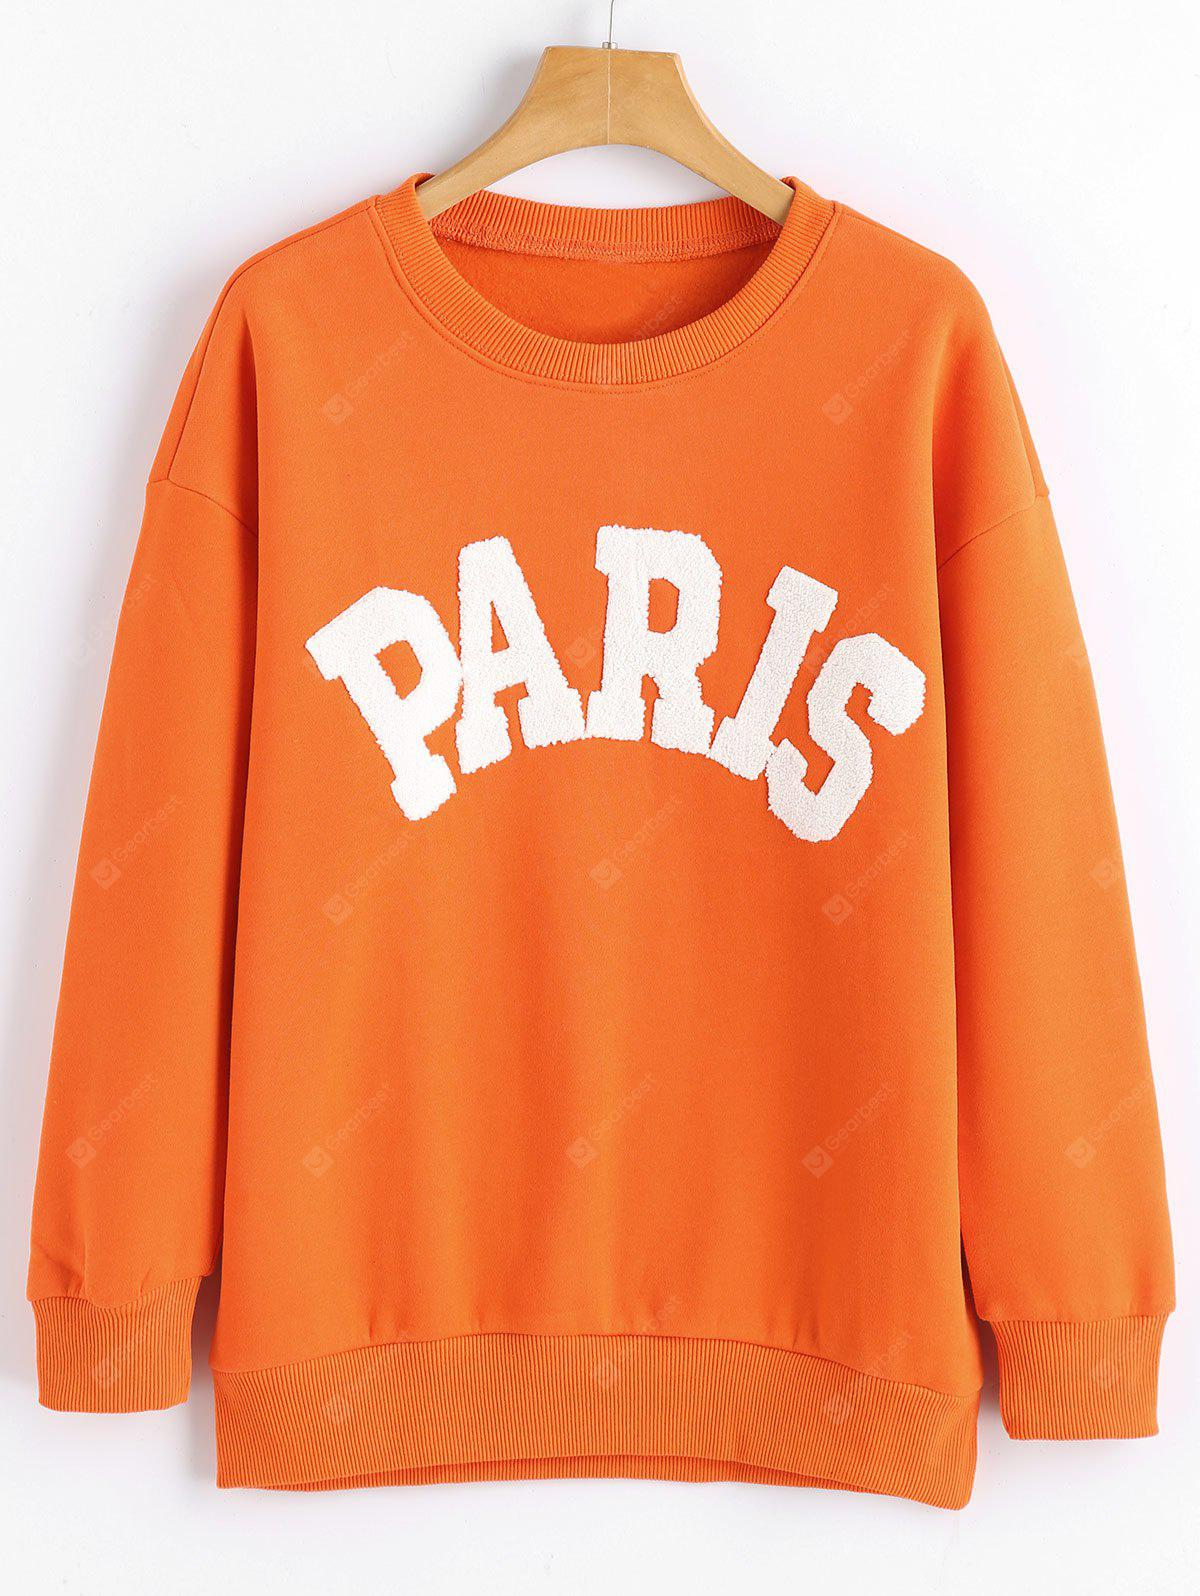 Paris Print Long Sleeve Sweatshirt